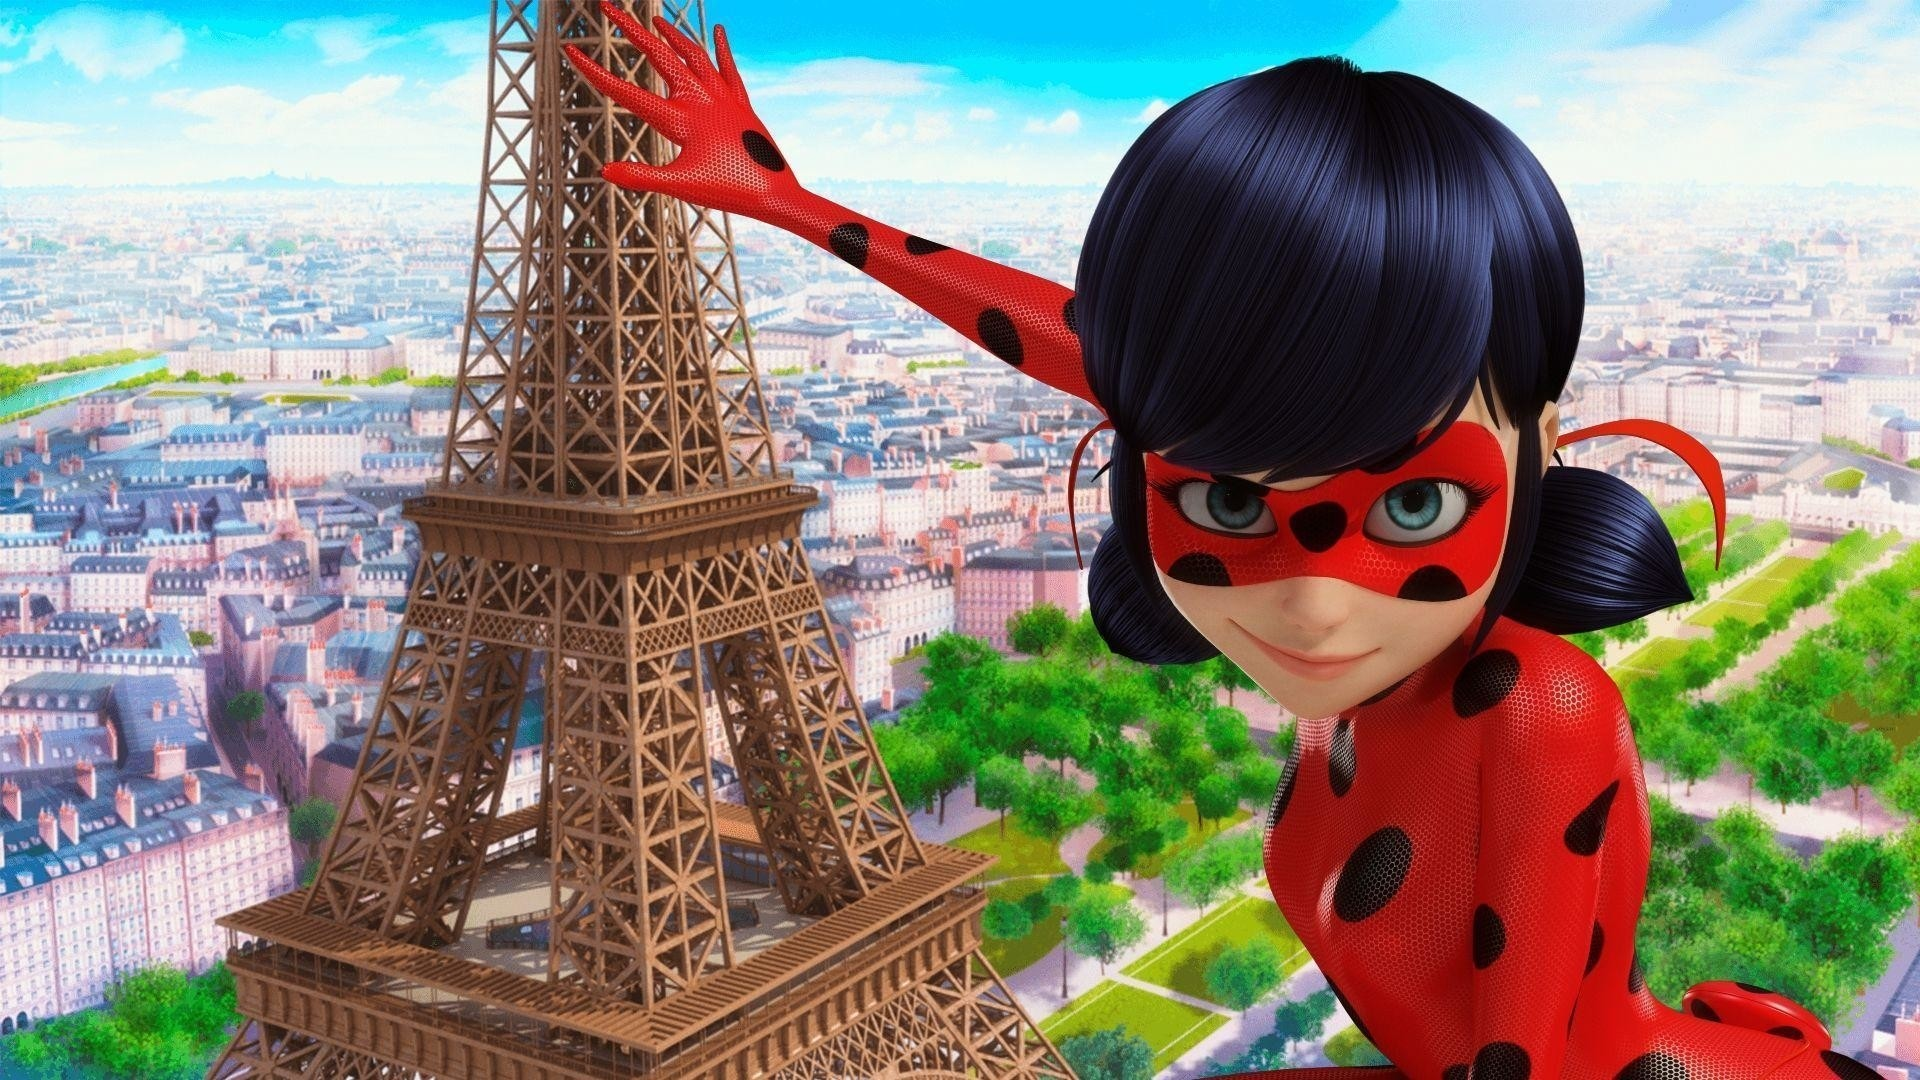 Miraculous Ladybug Full HD Wallpaper